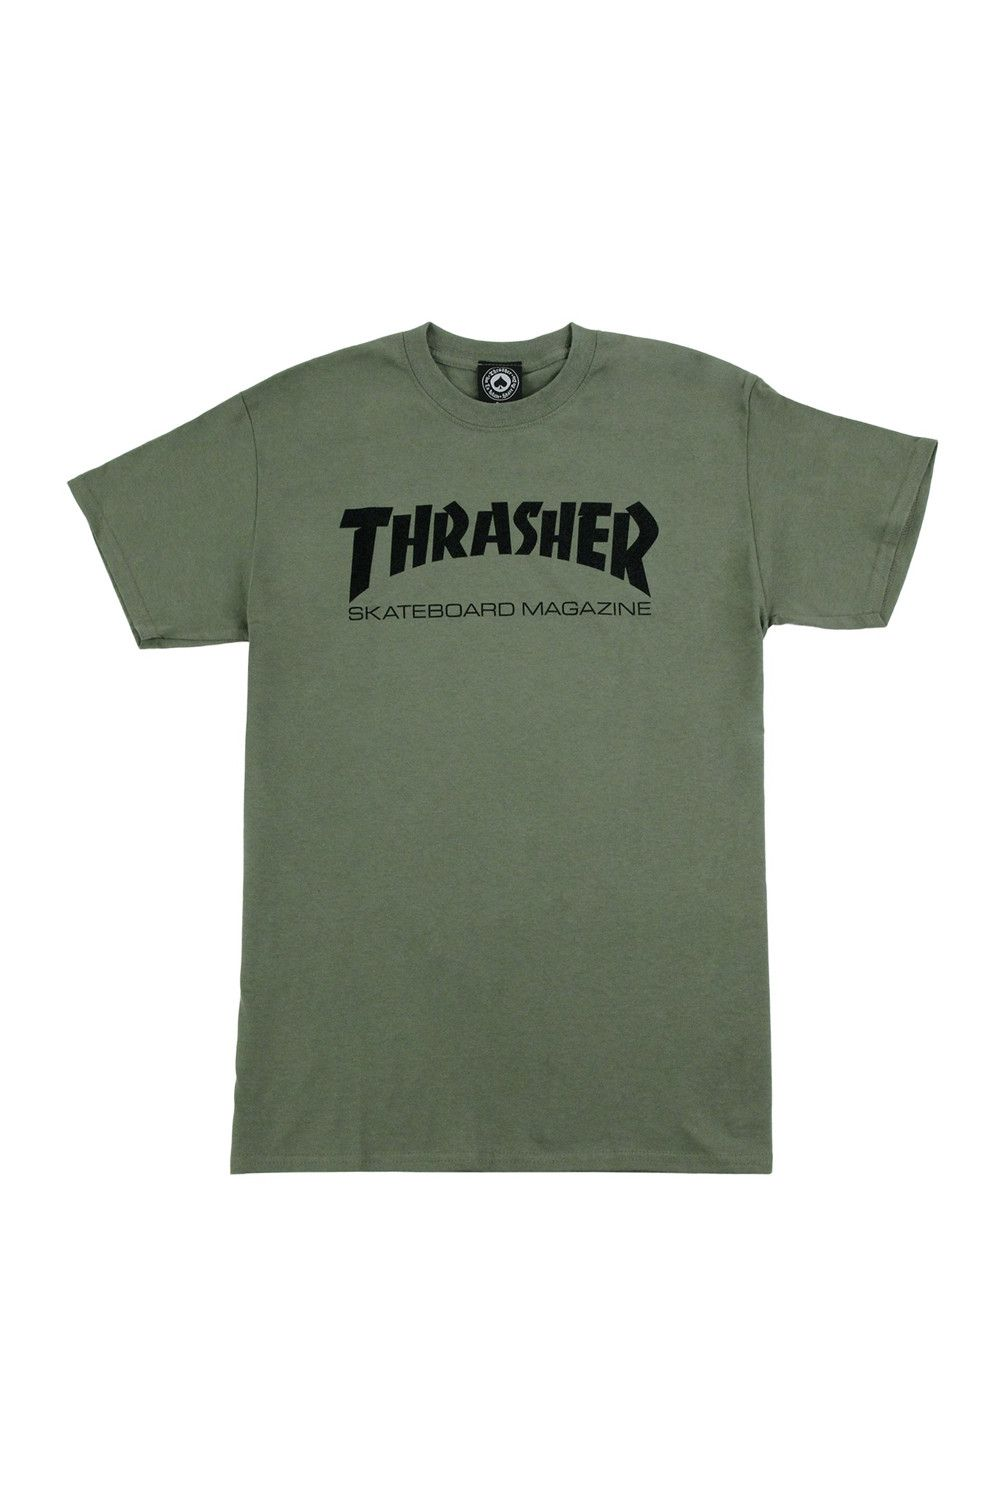 6eb5dce48ed8 The Skatemag Tee from Thrasher Magazine. Heavyweight